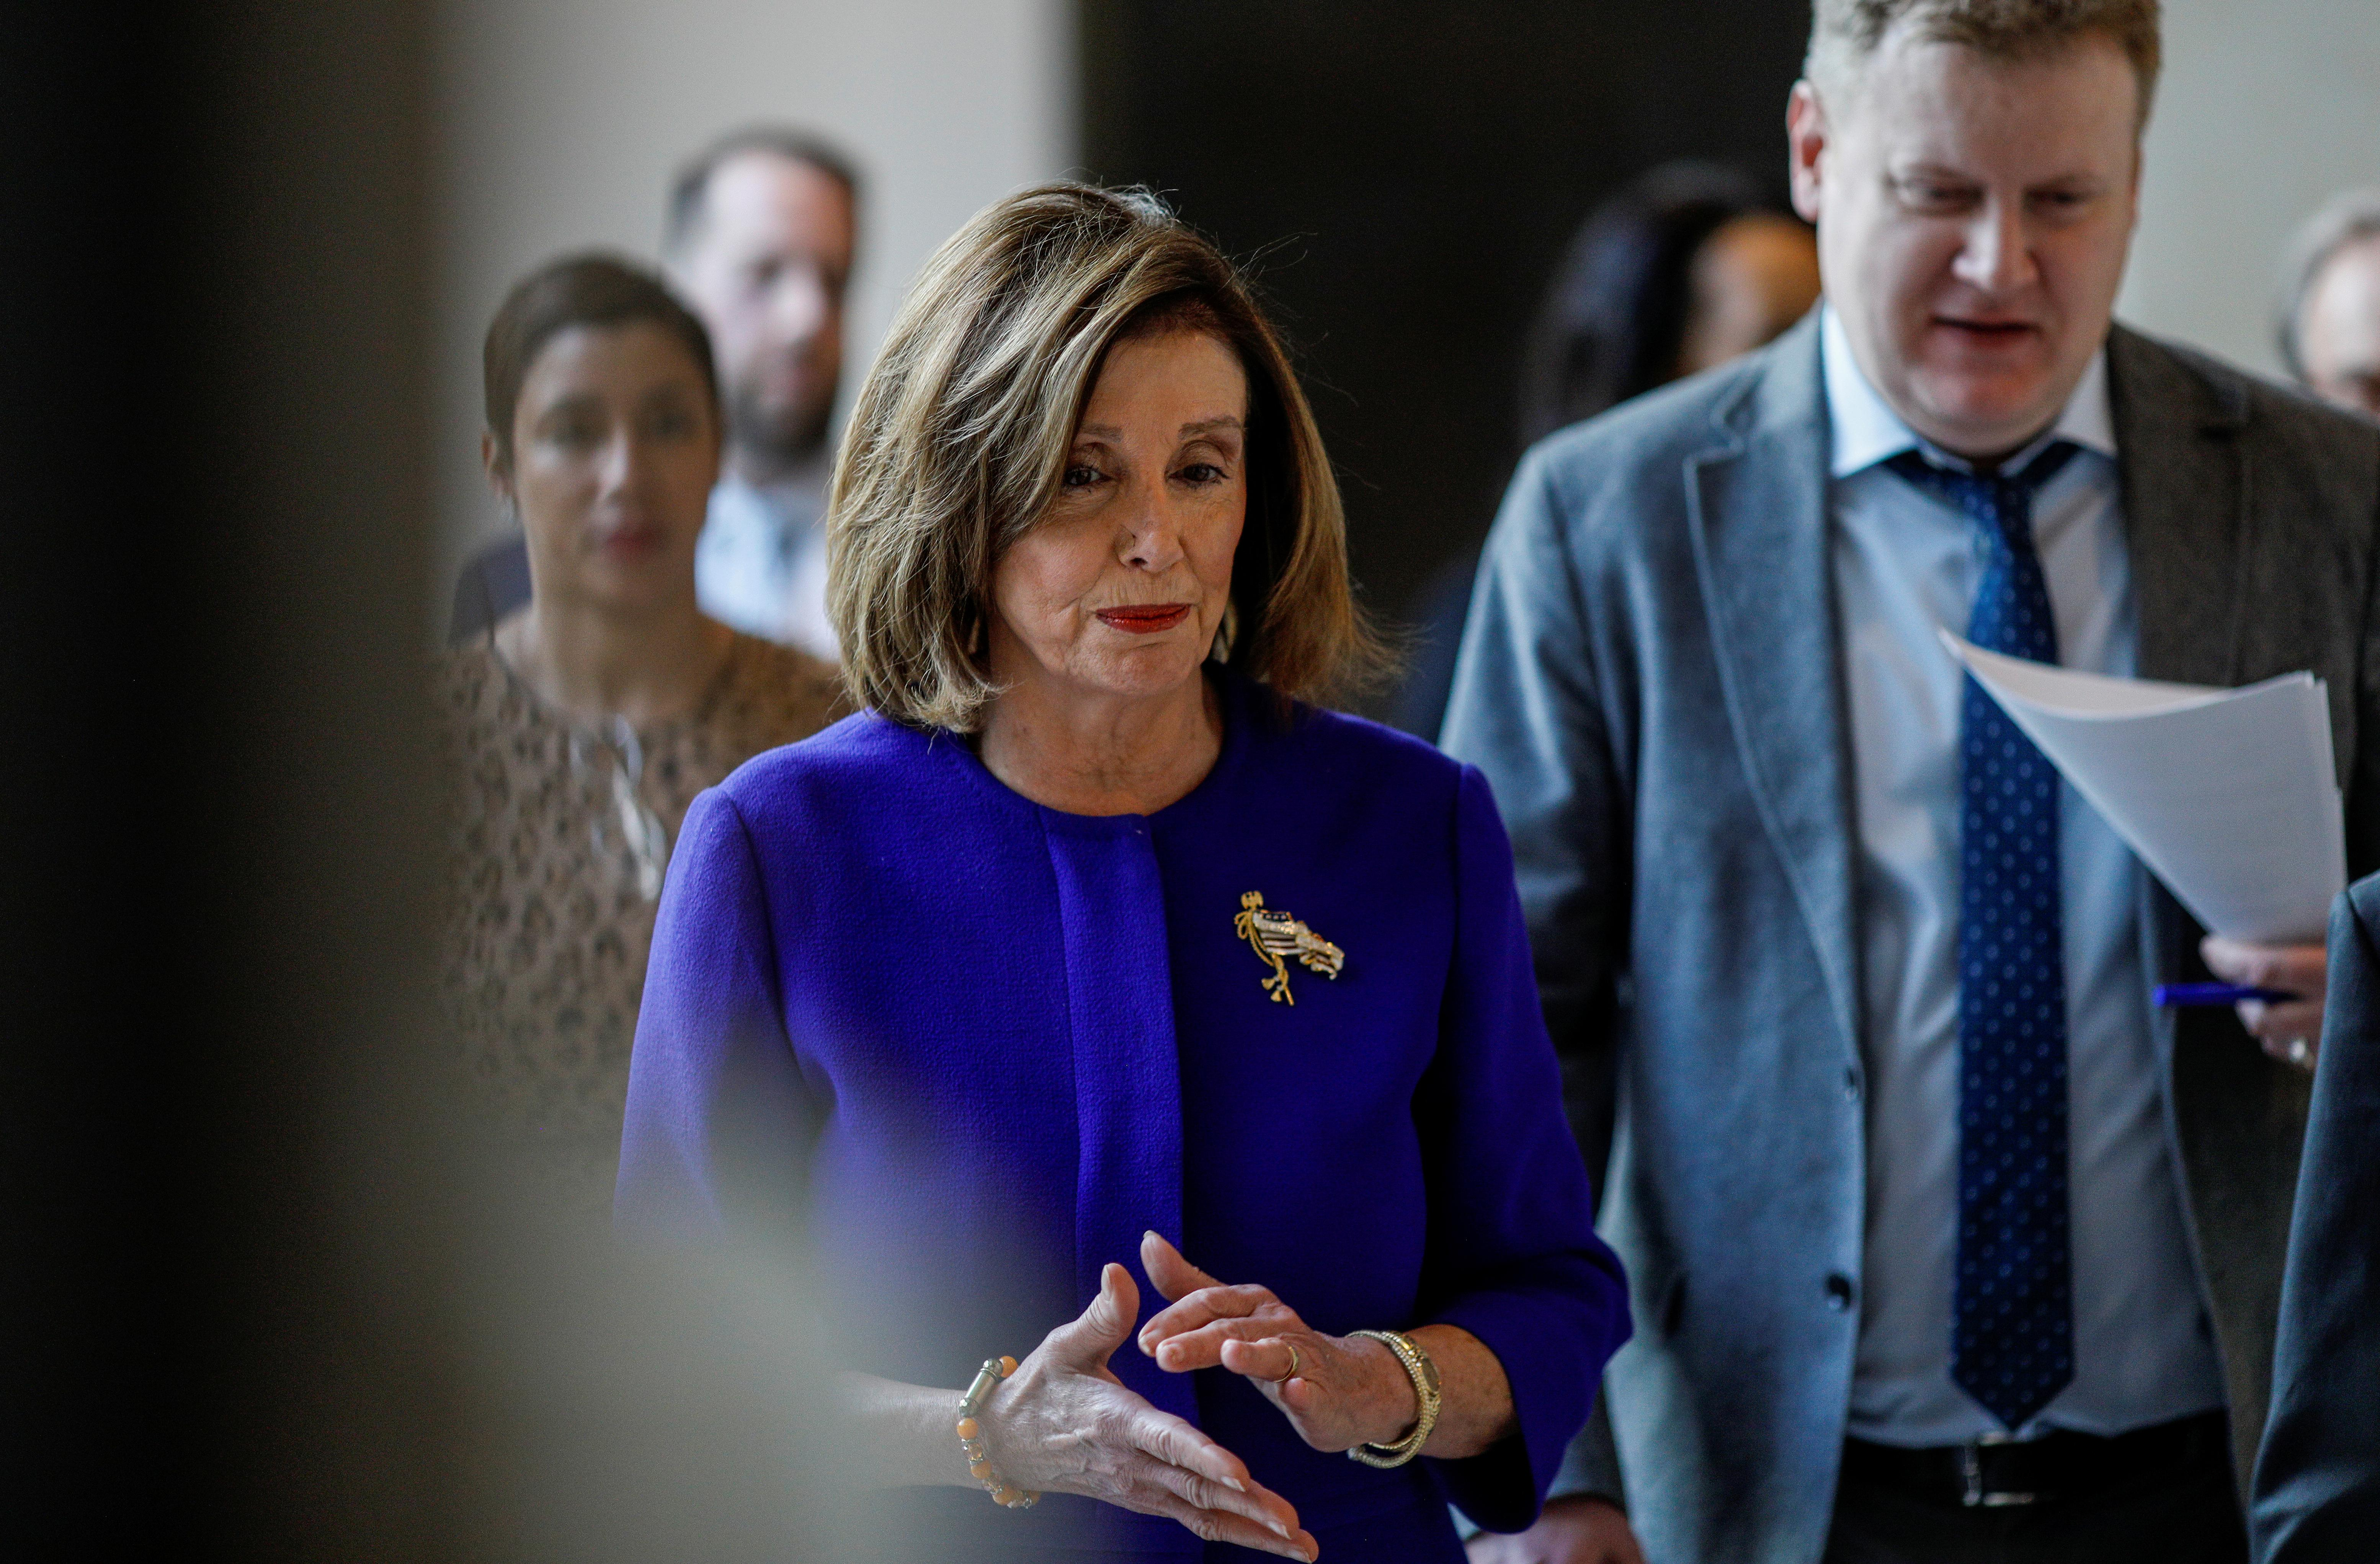 U.S. Speaker of the House Nancy Pelosi (D-CA) arrives for her weekly news conference at the U.S. Capitol in Washington, U.S., January 9, 2020. Tom Brenner